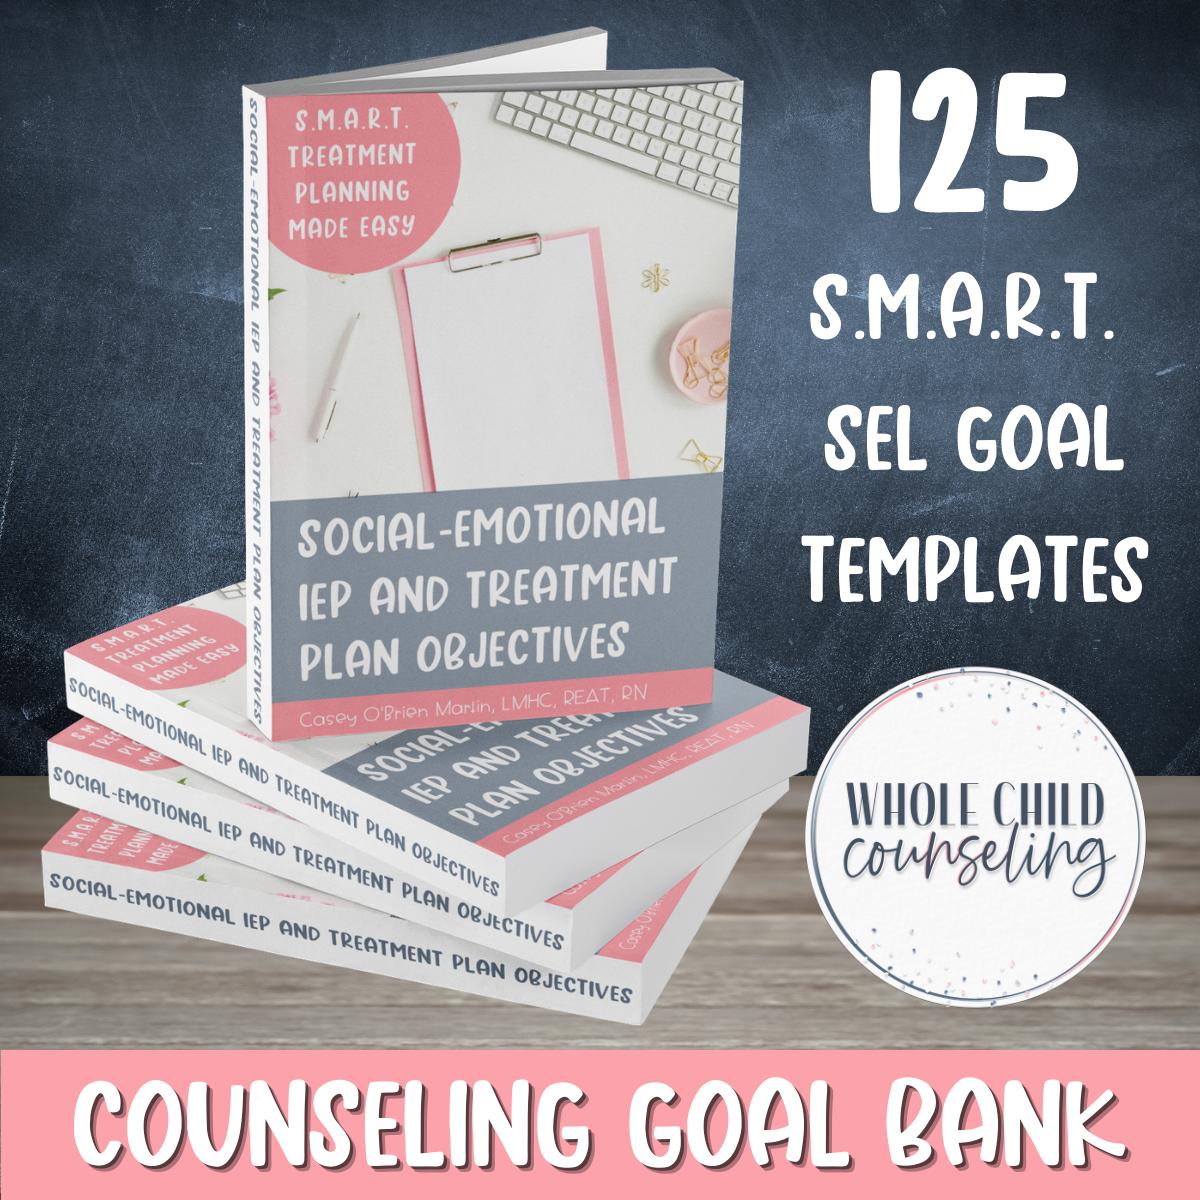 Social-Emotional IEP and Treatment Plan Objectives S.M.A.R.T. Treatment Planning Made Easy eBook